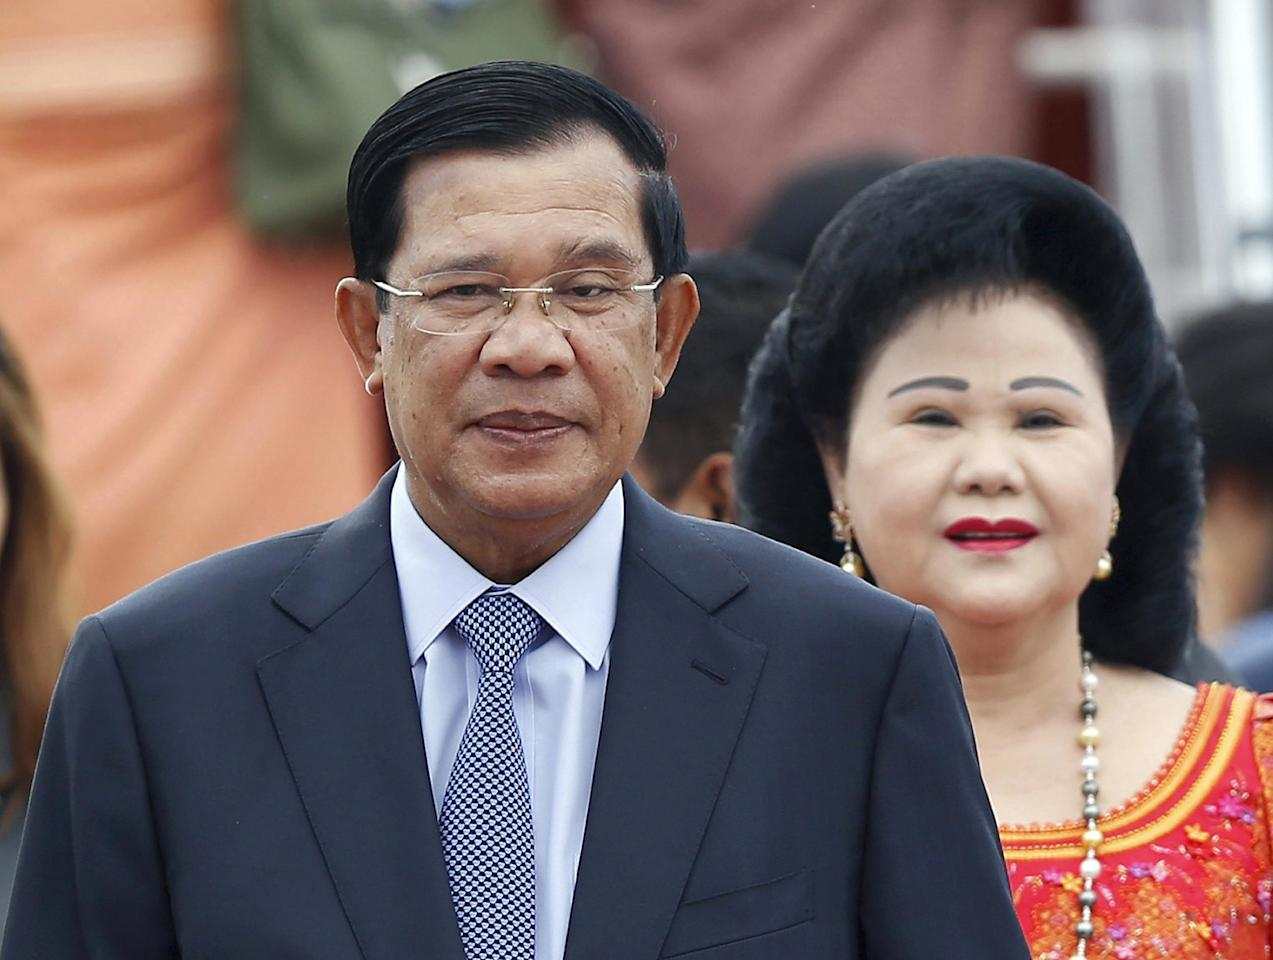 RETRANSMISSION WITH CORRECT SLUG - FILE - In this Nov. 20, 2015 file photo, Cambodia's Prime Minister Hun Sen and his wife Bun Rany arrive for the 27th Association of Southeast Asian Nations (ASEAN) summit, in Sepang, Malaysia. An extensive network of businesses controlled by the family of Cambodia's longtime leader sustains and is sustained by his authoritarian rule, making foreign investment in the country risky, says a report issued Thursday, July 7, 2016 by the research and advocacy group Global Witness. (AP Photo/Lai Seng Sin, File)